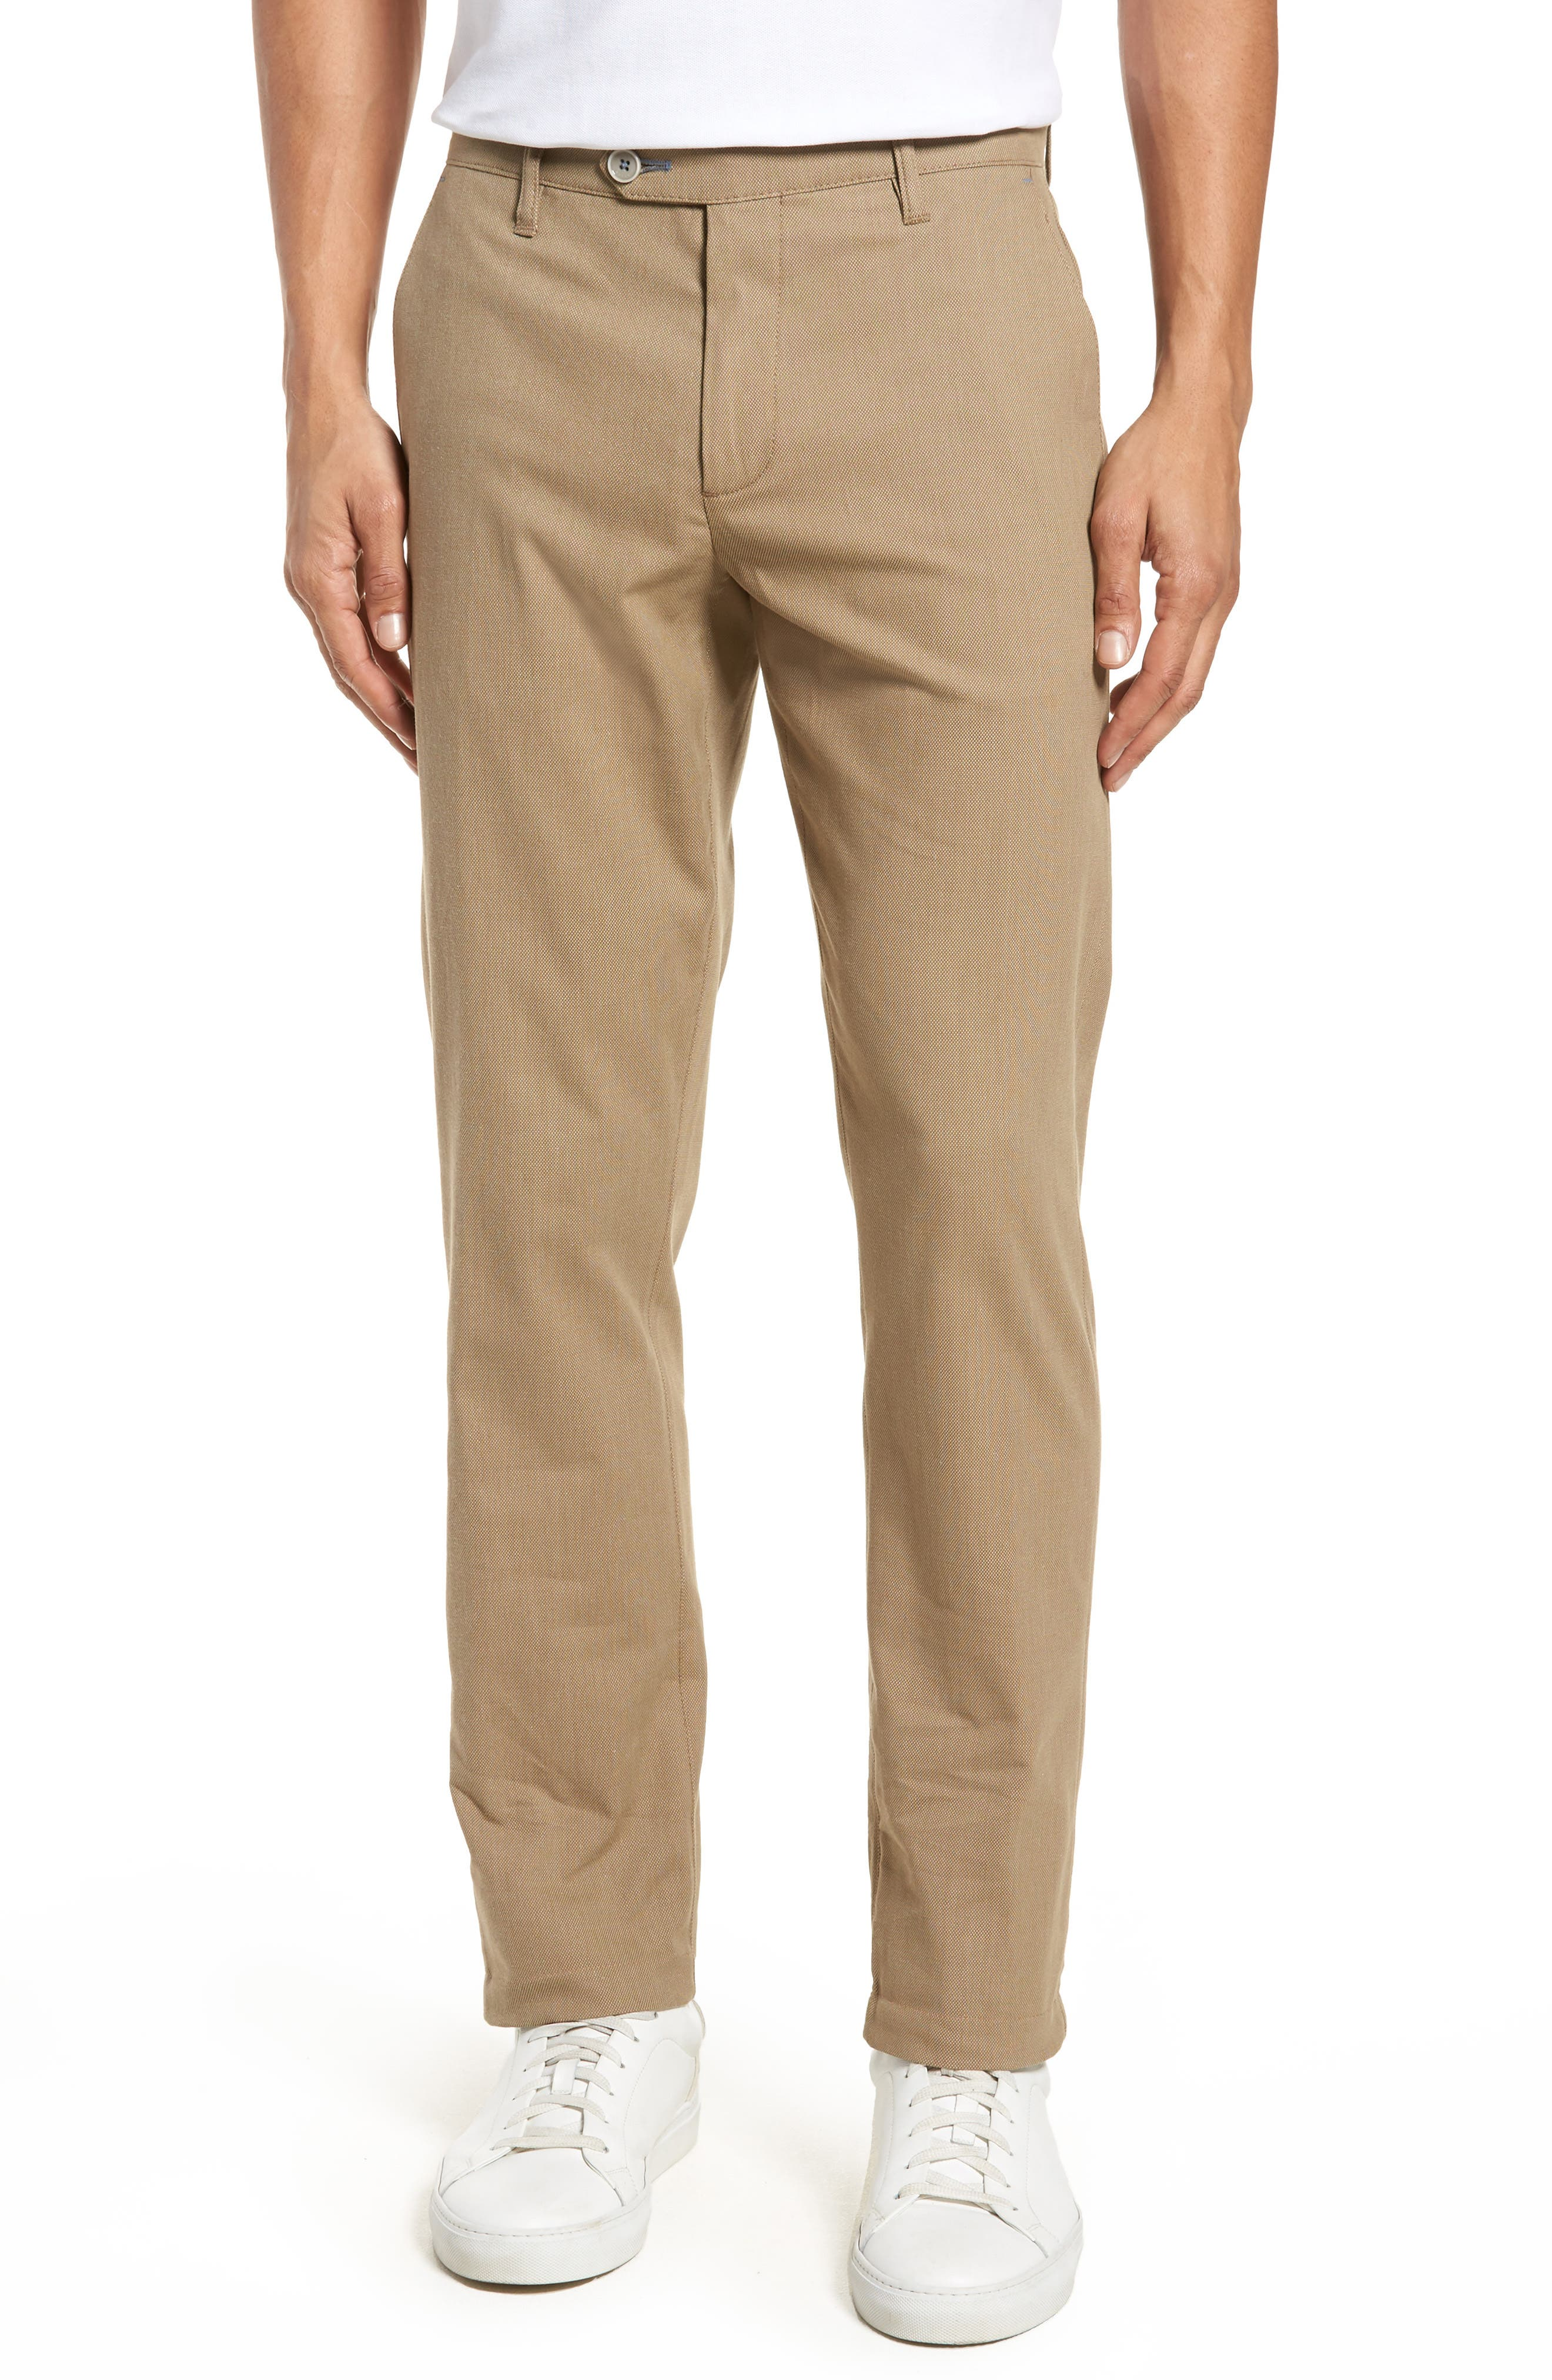 Holclas Classic Fit Chino Pants,                         Main,                         color, 250